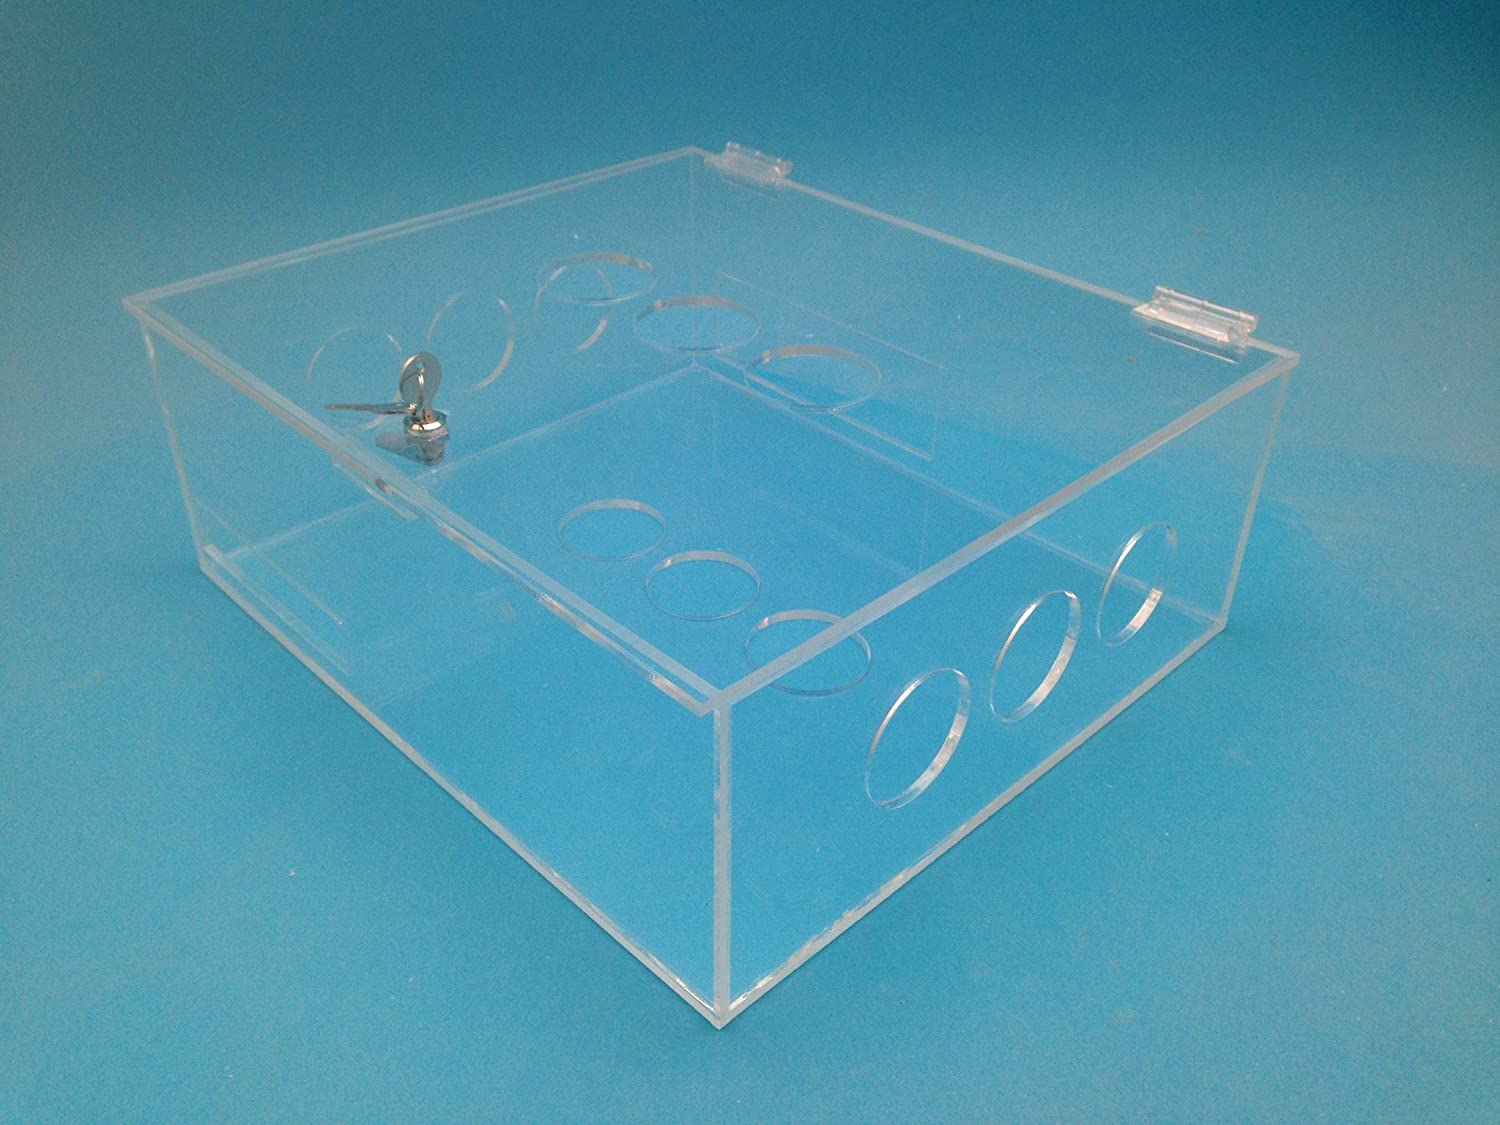 Playstation 3 Acrylic Video Game Console Security Case